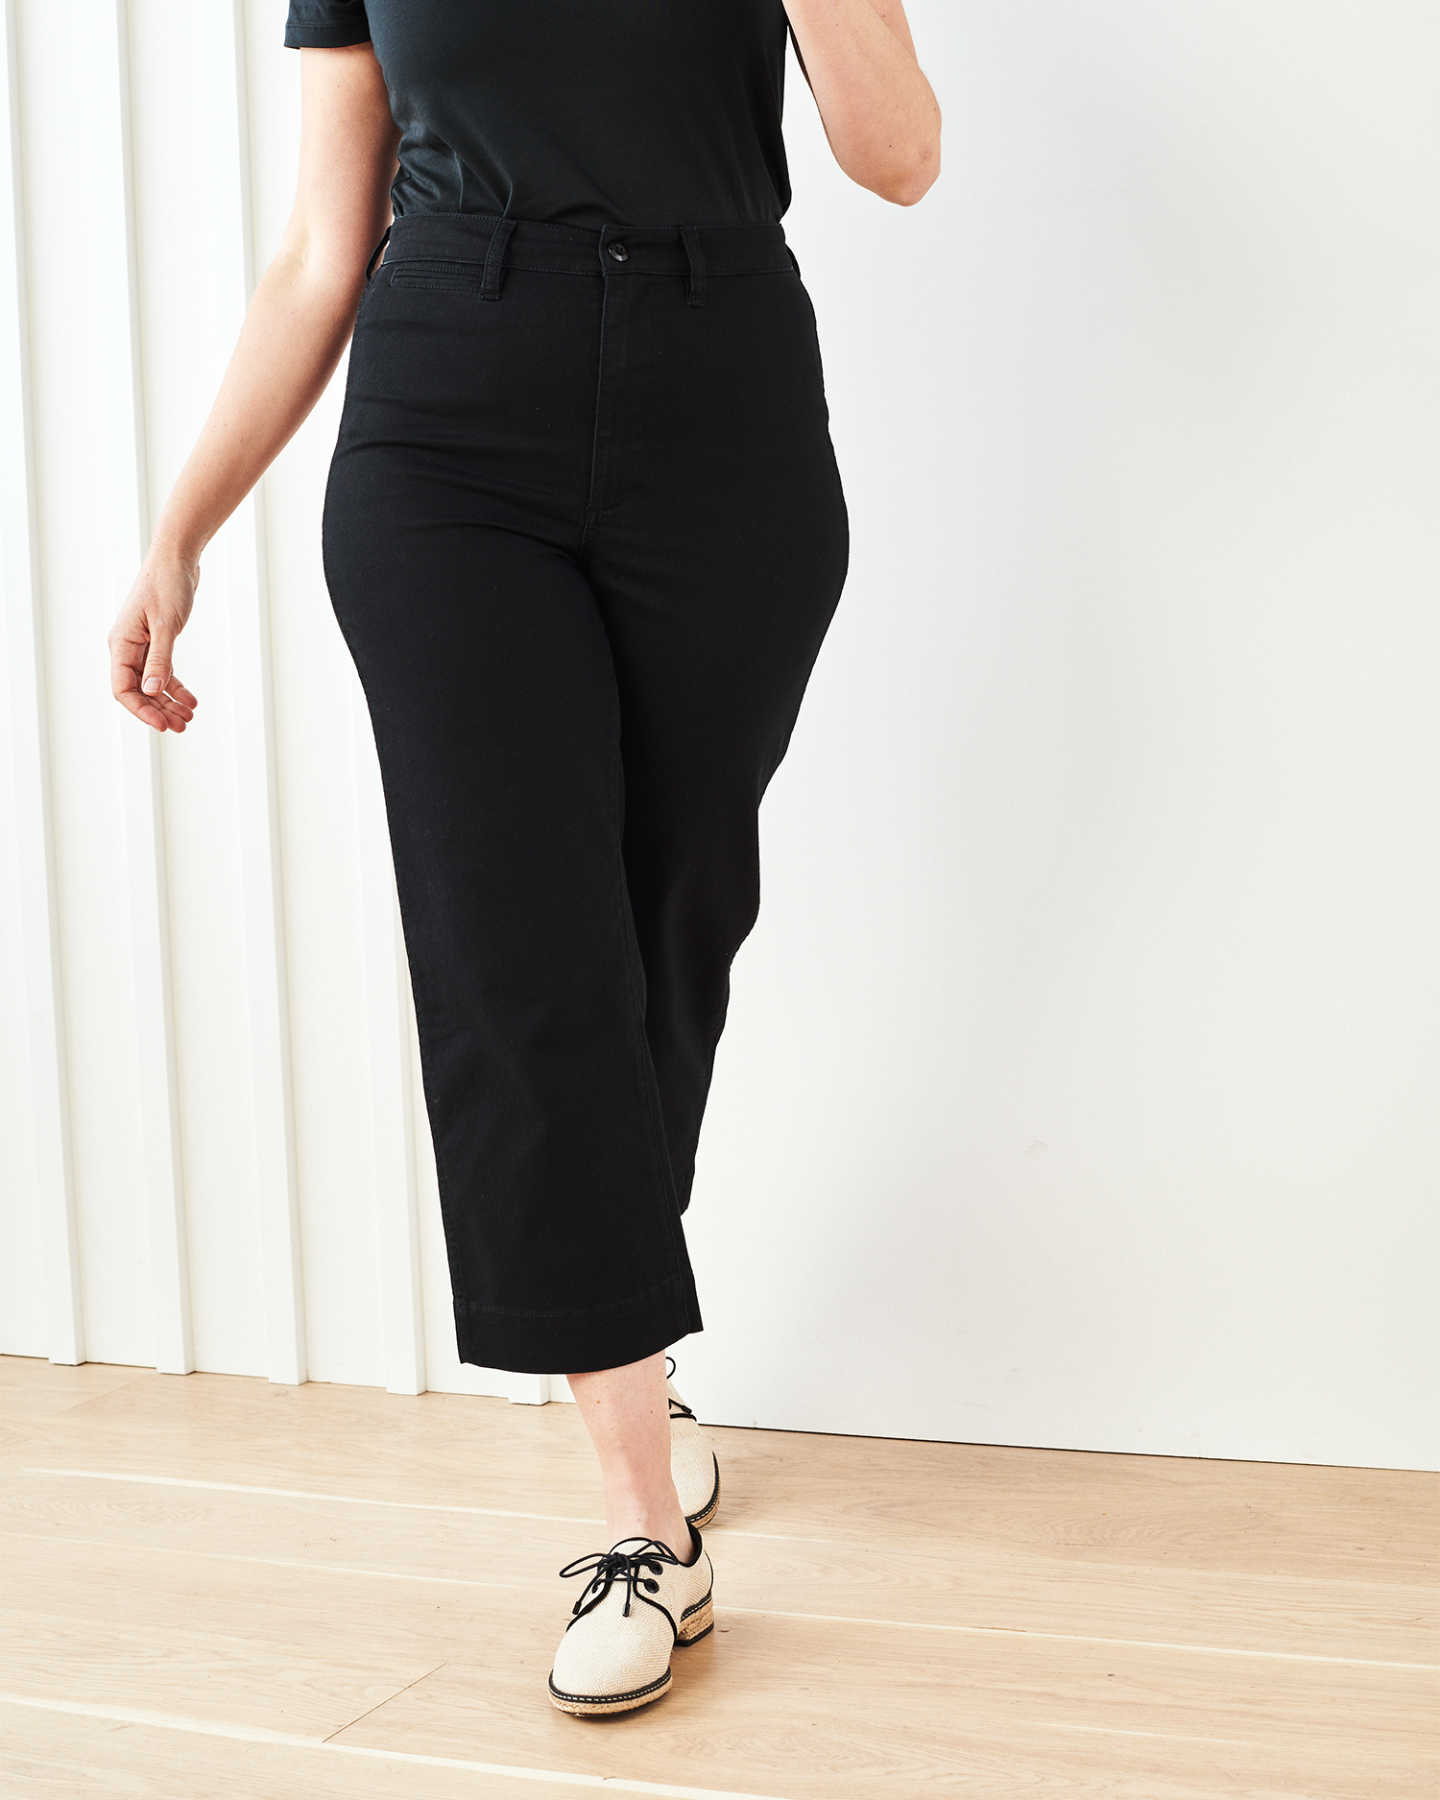 Stretch Cotton Twill Wide-Leg Crop Pant - Black - 2